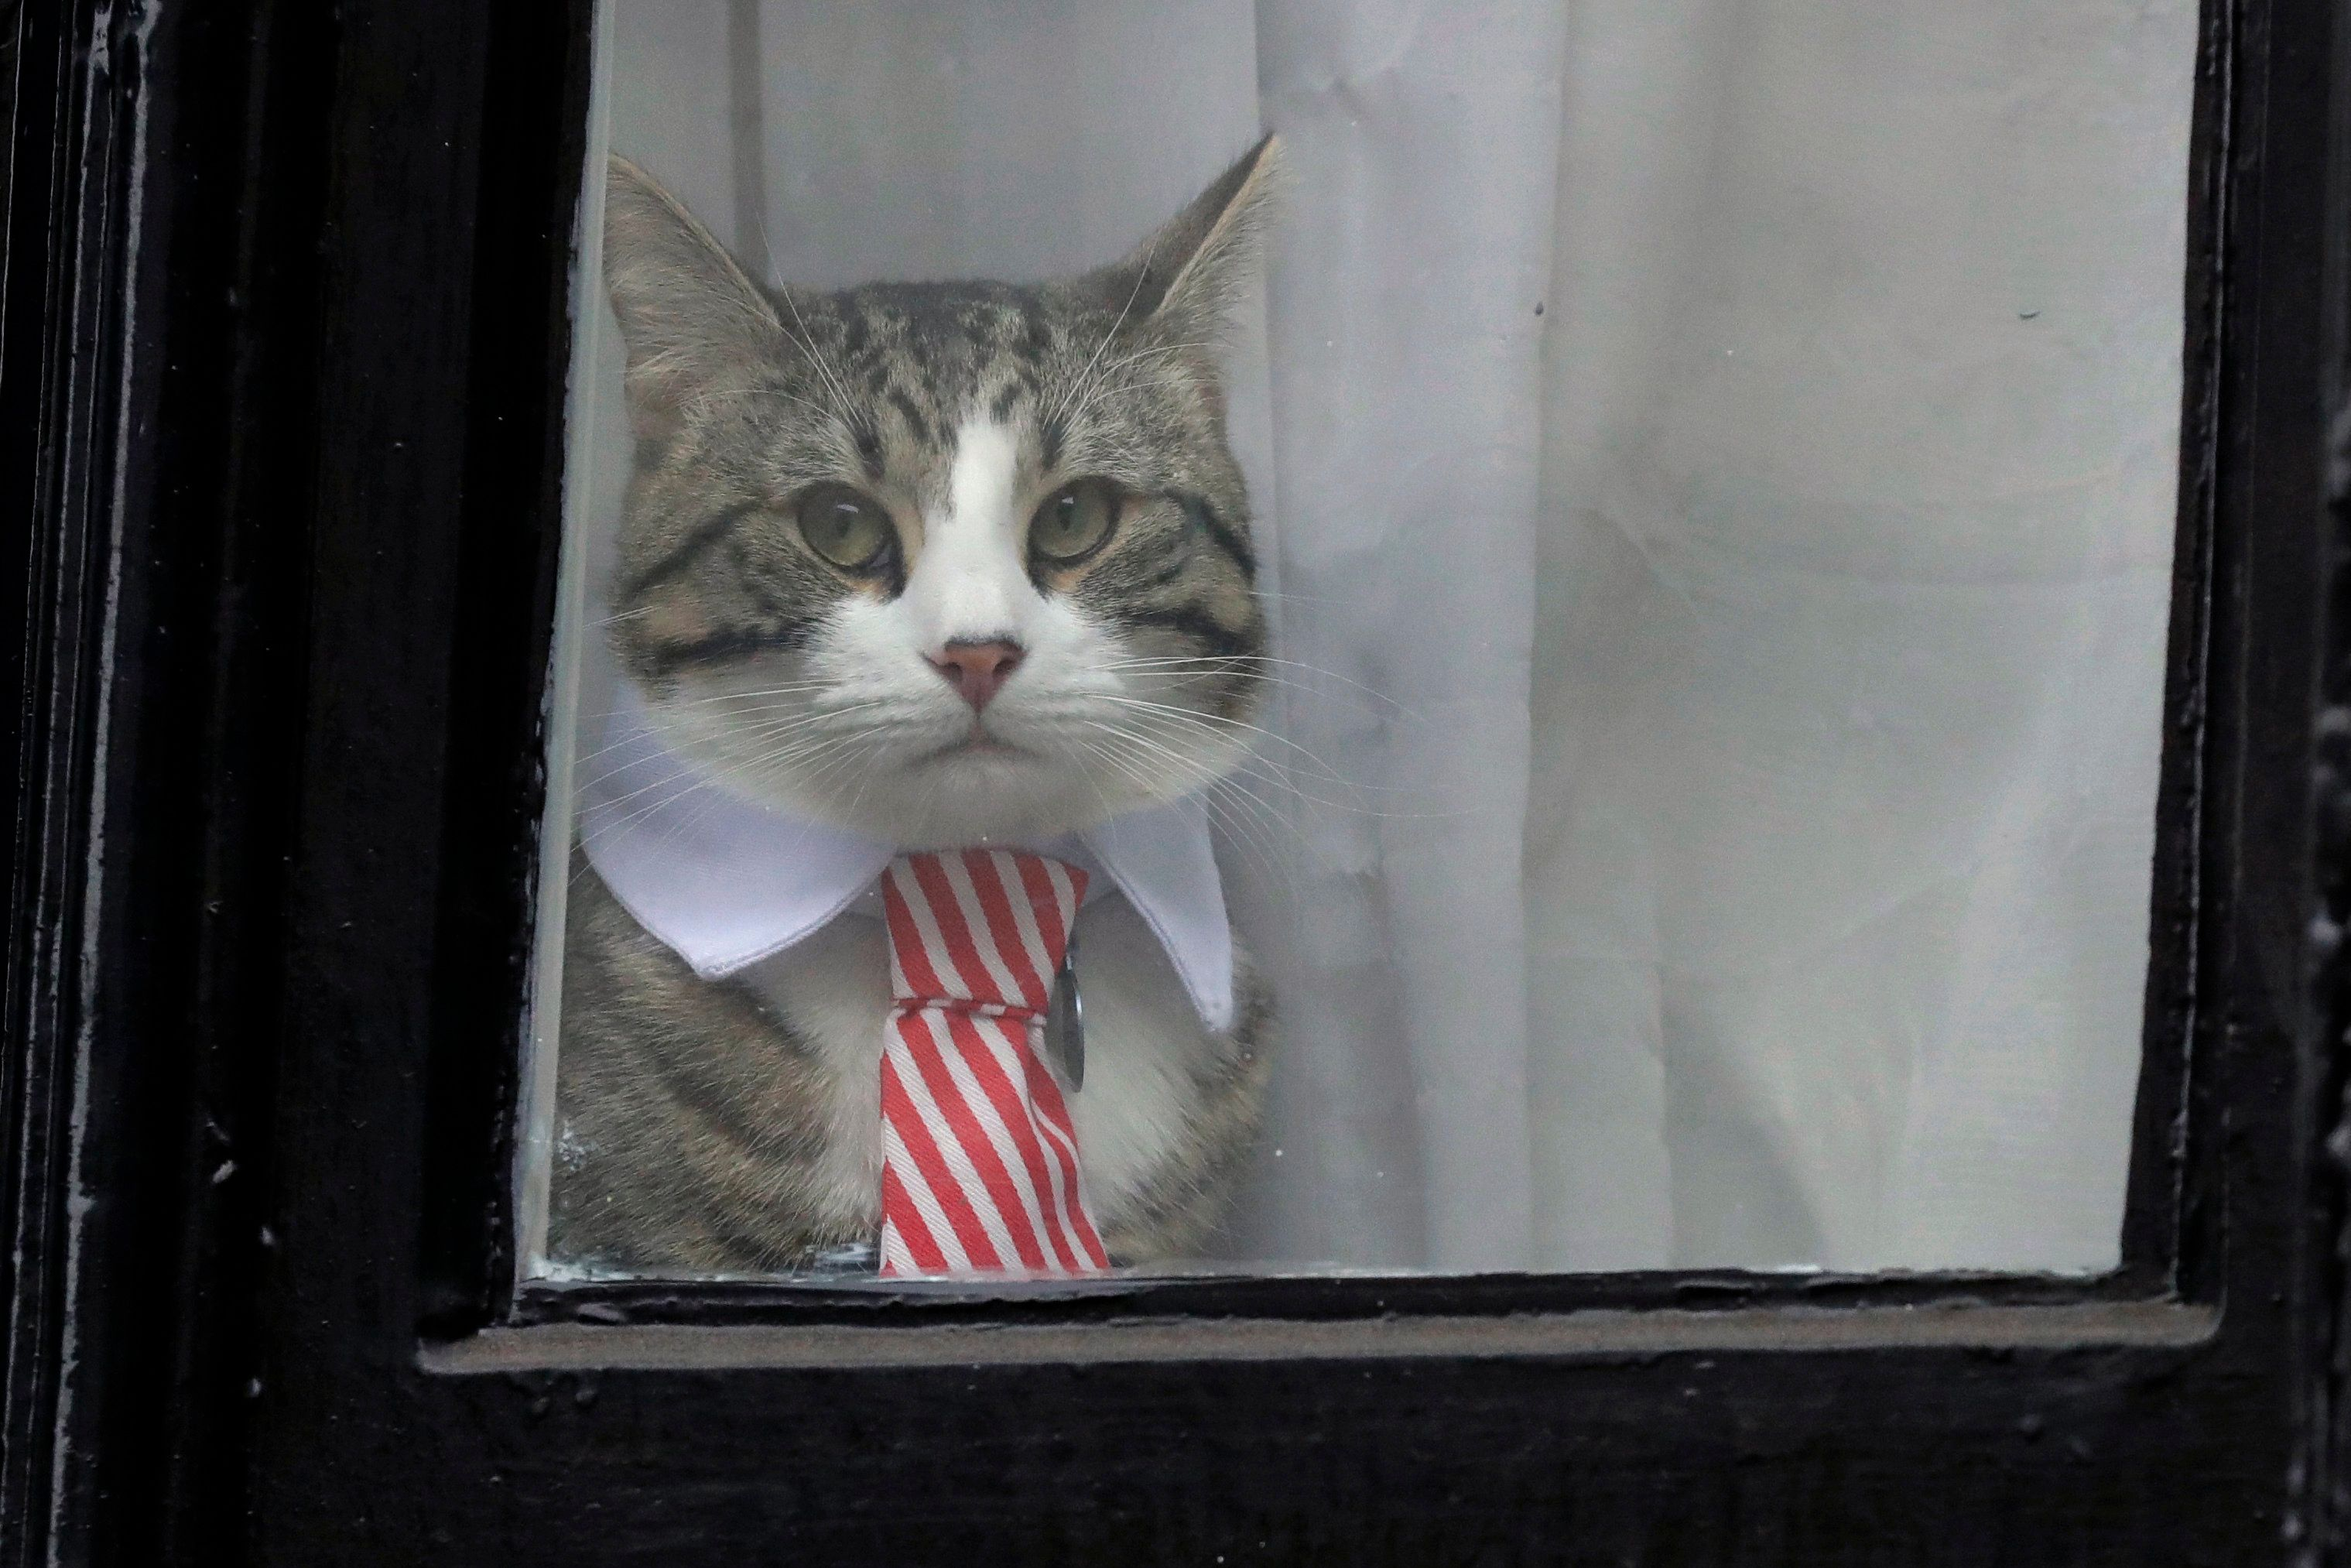 FILE - In this Nov. 14, 2016 file photo, a cat dressed with a collar and tie looks out from a window of the Ecuadorian embassy in London. Following the April 11, 2019 arrest of Julian Assange outside the Ecuadorian embassy in London, Ecuador's Foreign Minister José Valencia answered concerns about Assange's cat, saying the feline had been delivered to Assange's relatives at the end of 2018. (AP Photo/Matt Dunham, File)